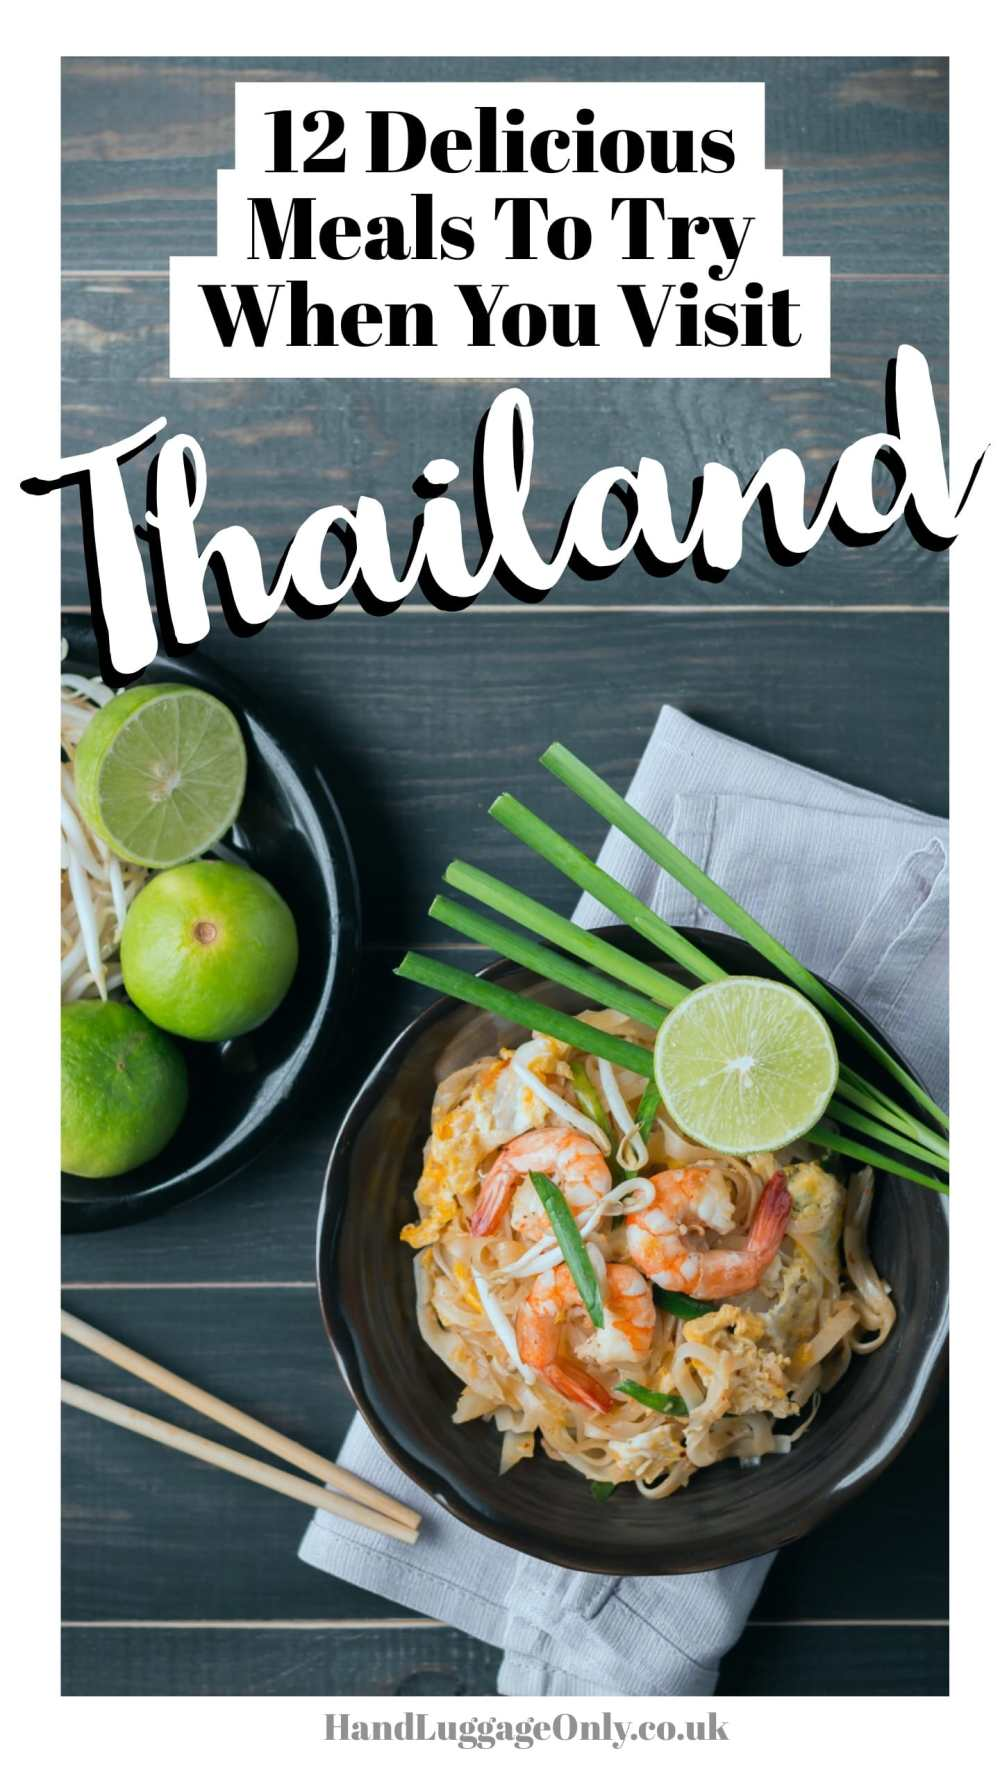 12 Tasty Thai Dishes And Food to Eat When in Thailand (1)